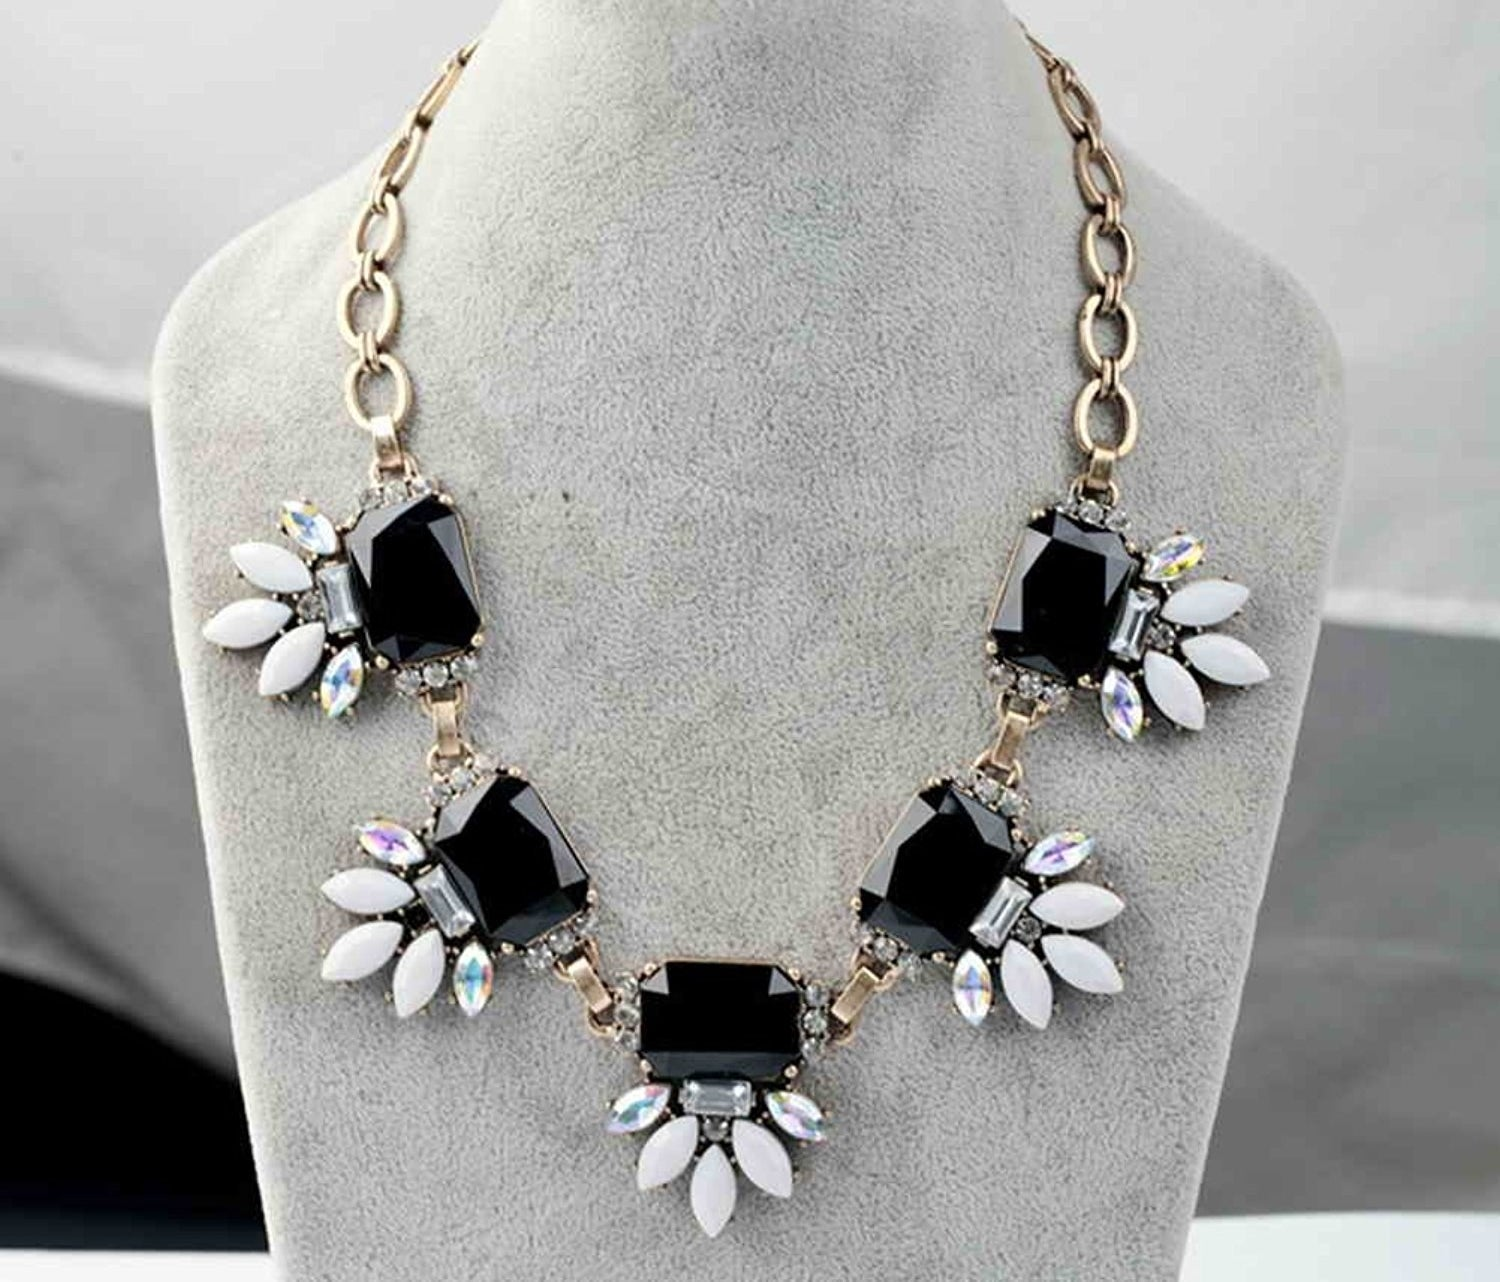 """Promising review: """"This necklace is beautiful and well made. It doesn't look cheap at all. This picky buyer is very happy!"""" —AshleyPrice: $23.99 // Rating: 4.5/5"""